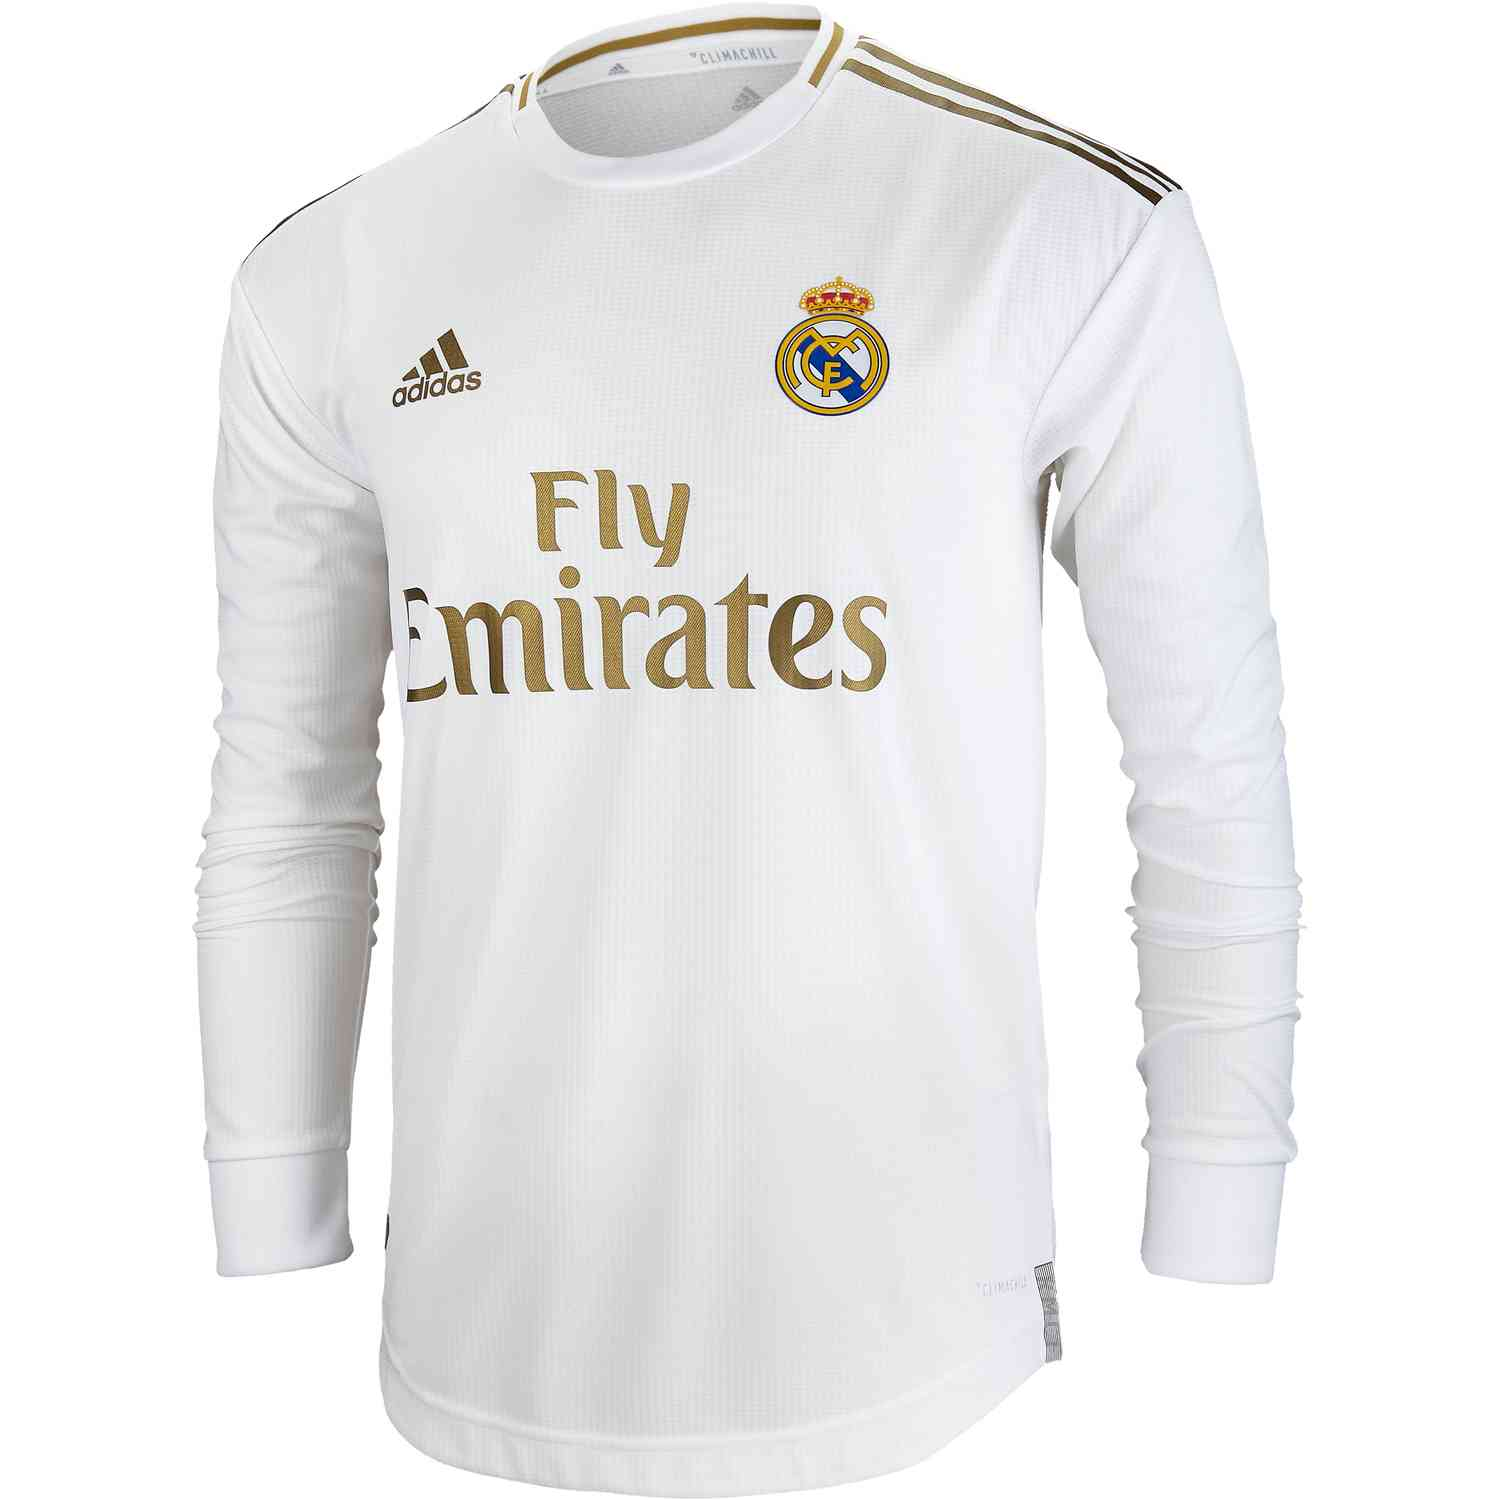 info for eaa43 1f8c6 2019/20 adidas Gareth Bale Real Madrid Home L/S Authentic ...